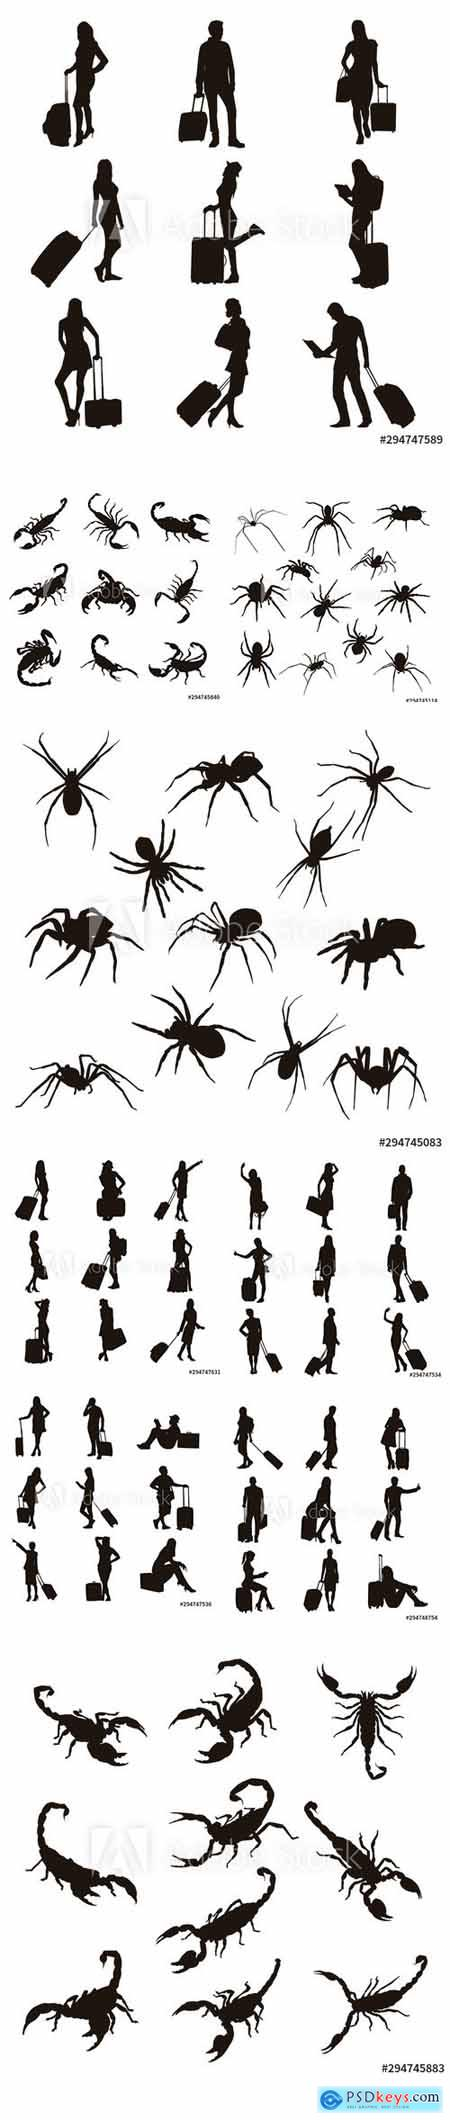 Vector Set of People with Travel Bag, Scorpion and Spider Illustration